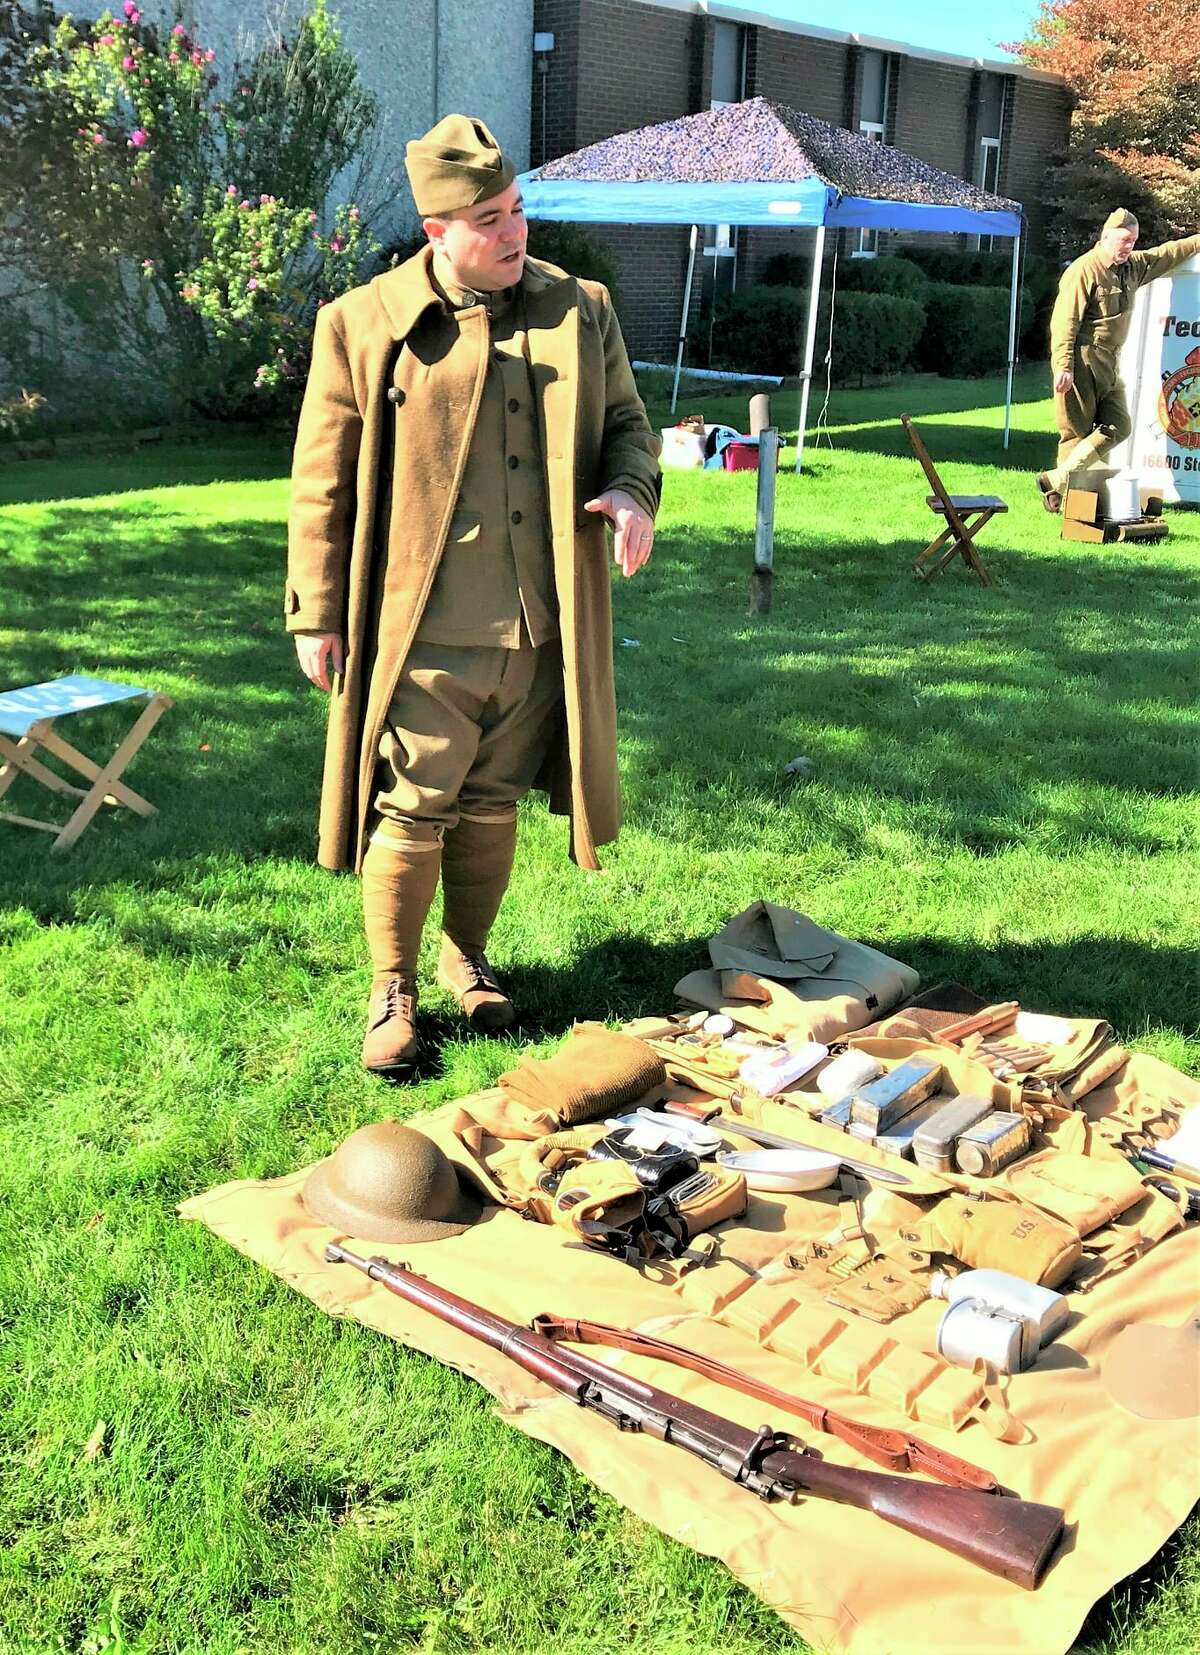 The Military History Timeline event will feature elements of American military life dating back to the American Revolution. (Sanilac County Historical Society/Courtesy Photo)